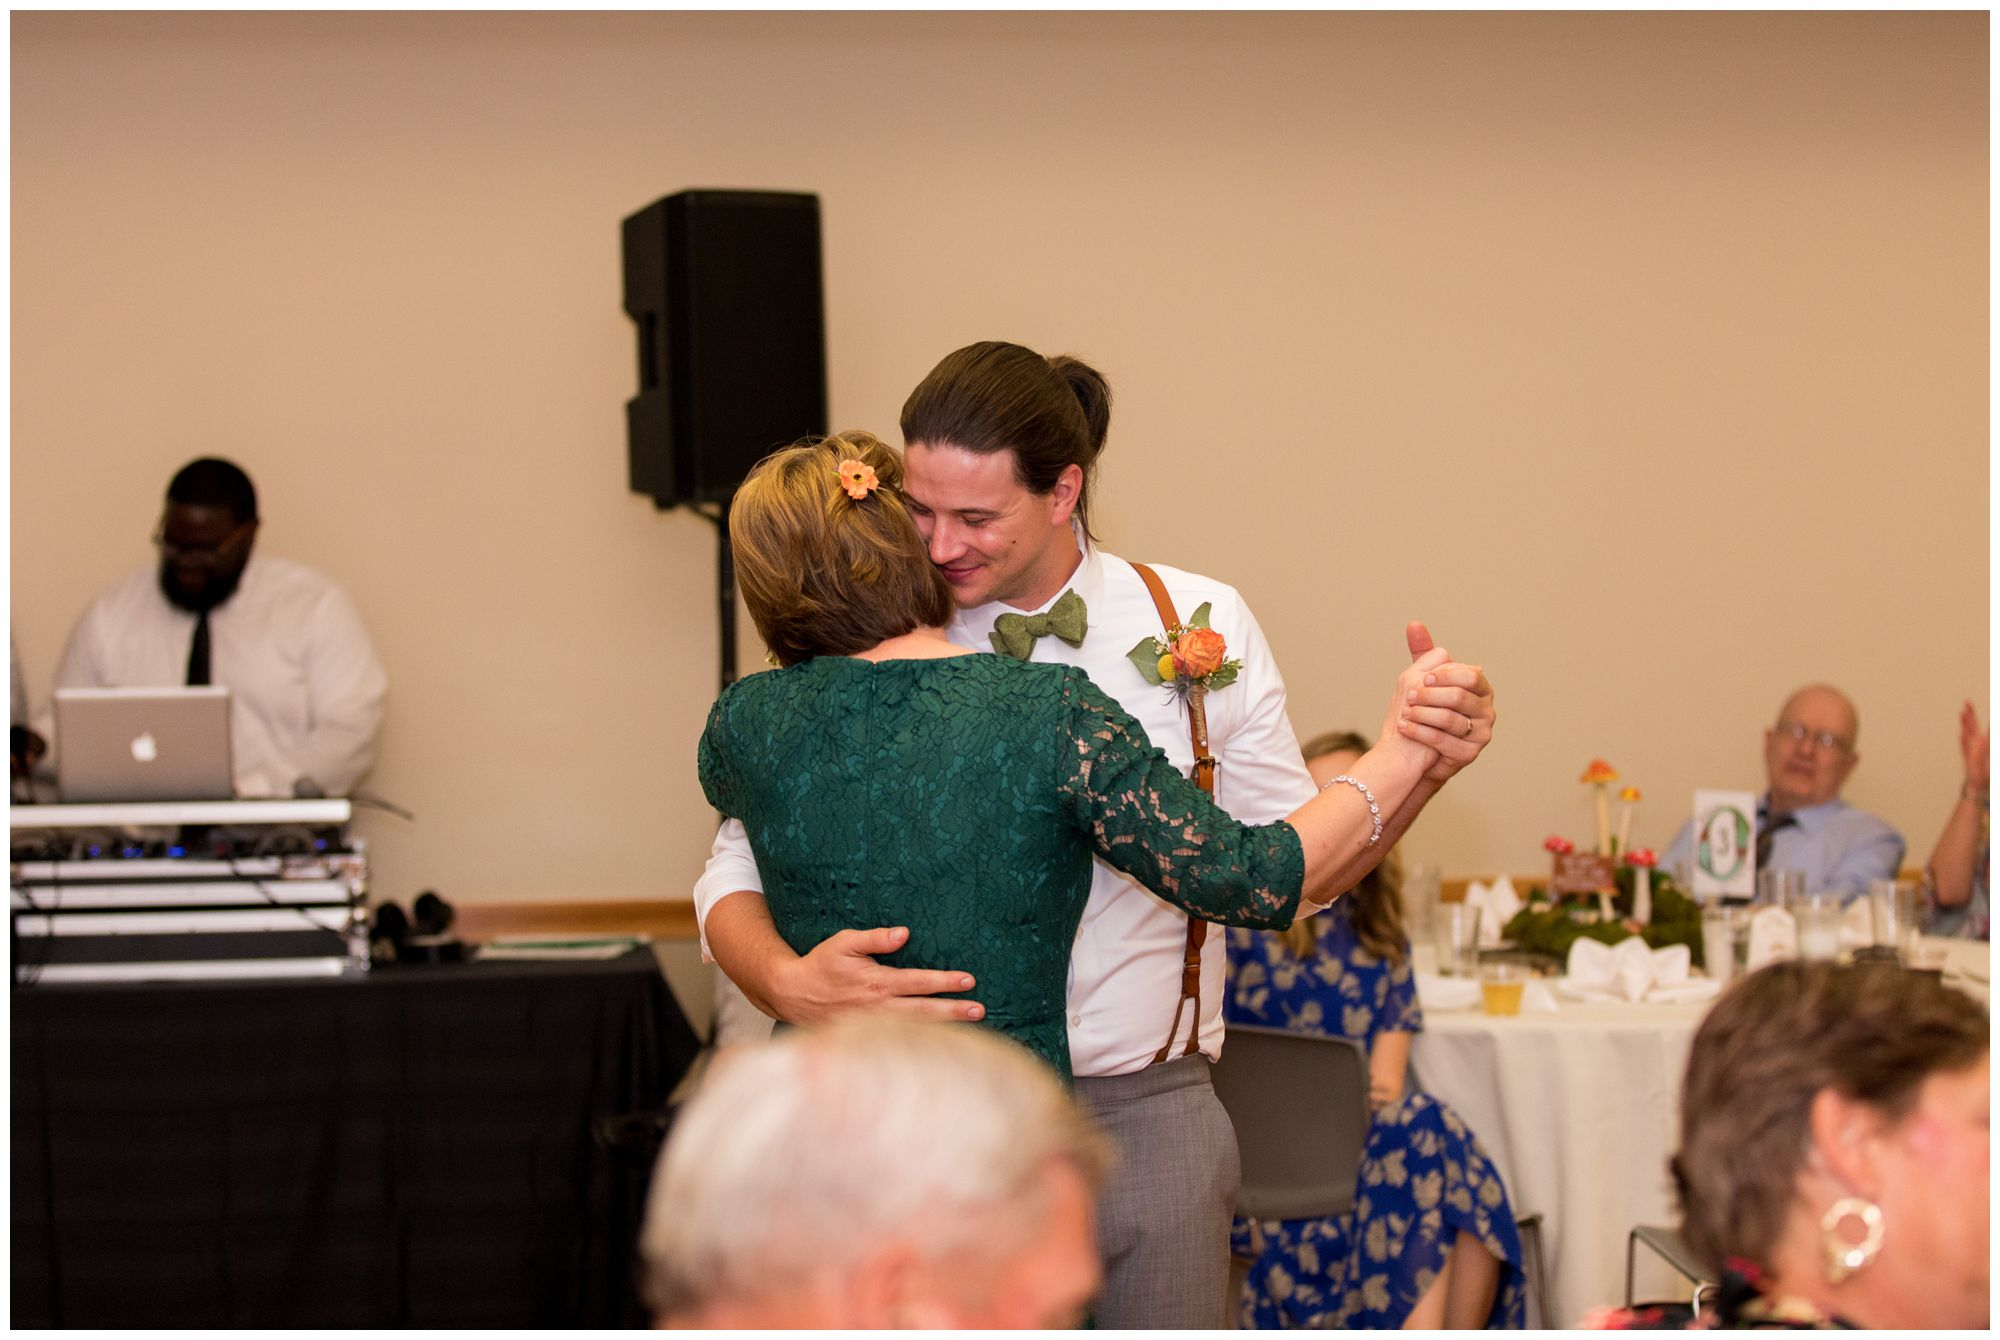 groom and mother dance during wedding reception at Forest Park Inn